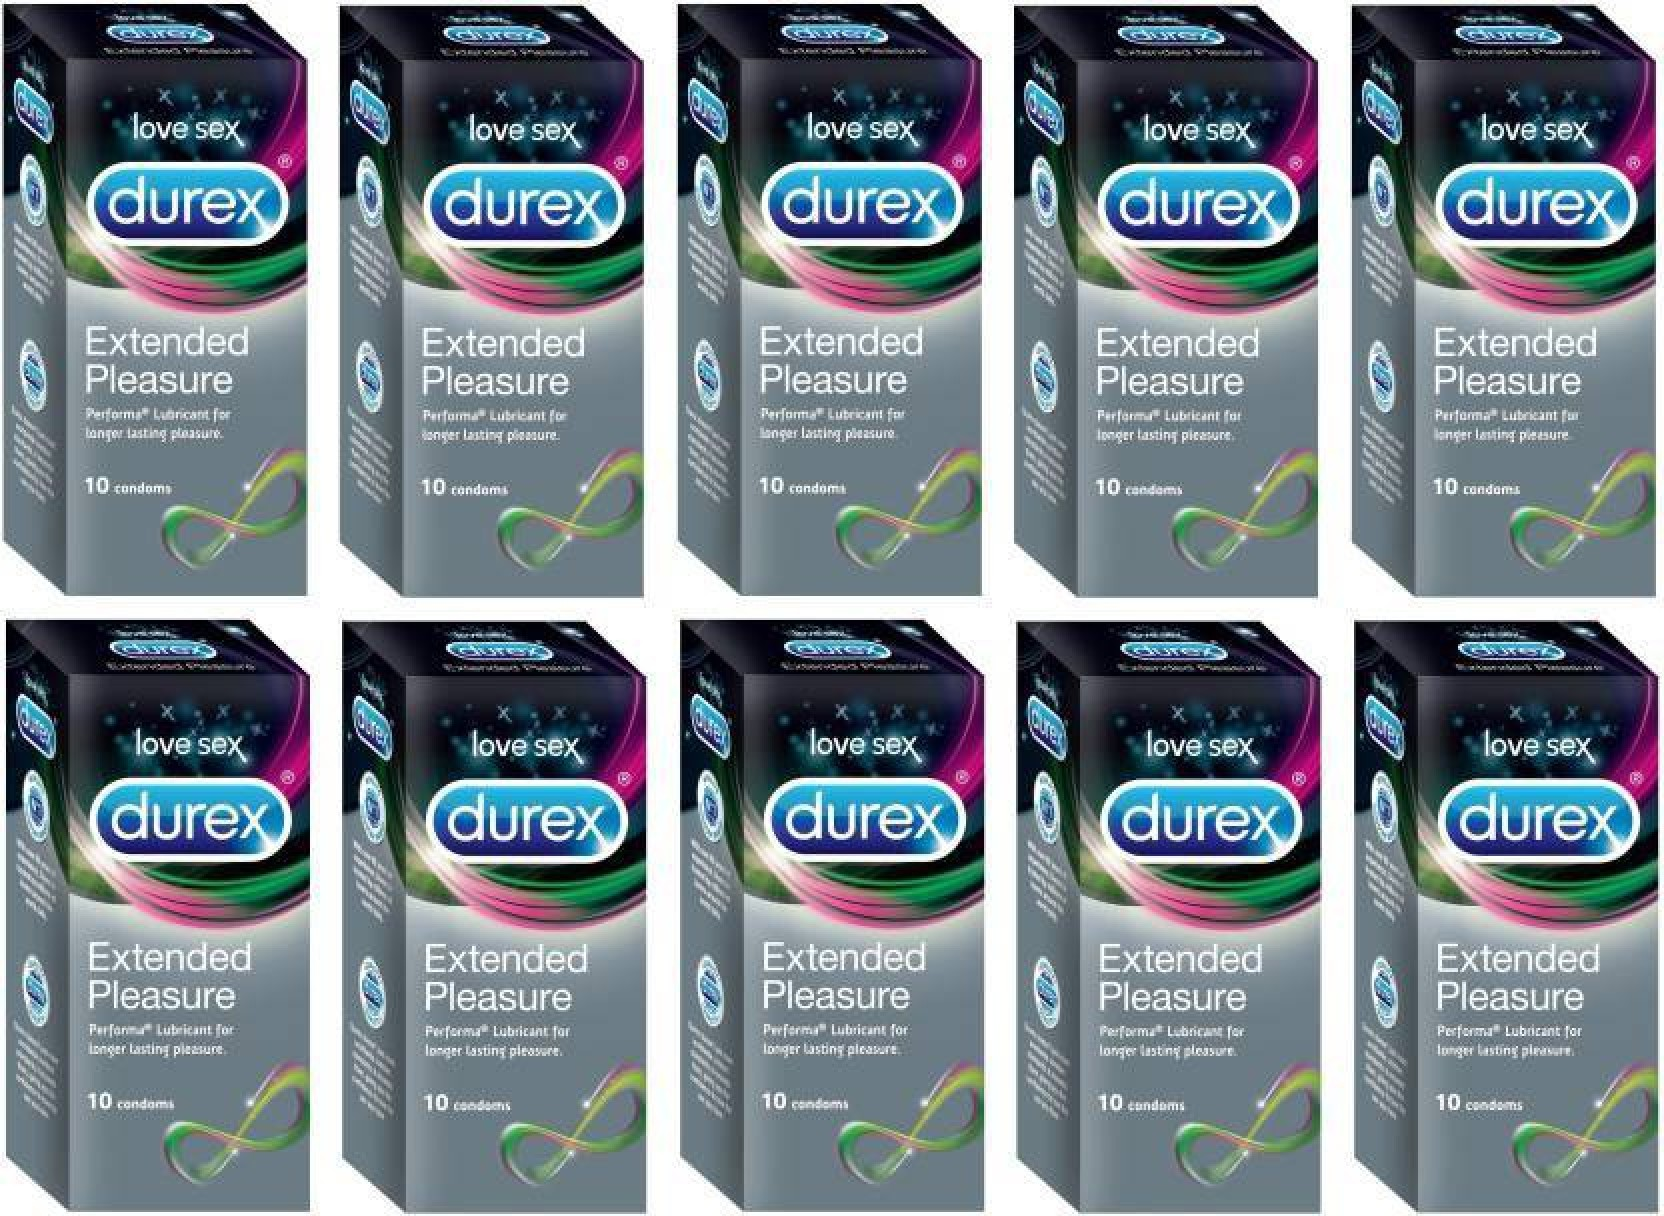 Durex Extended Pleasure Climax Delay Long Last Intimacy Discreet Condom Add To Cart